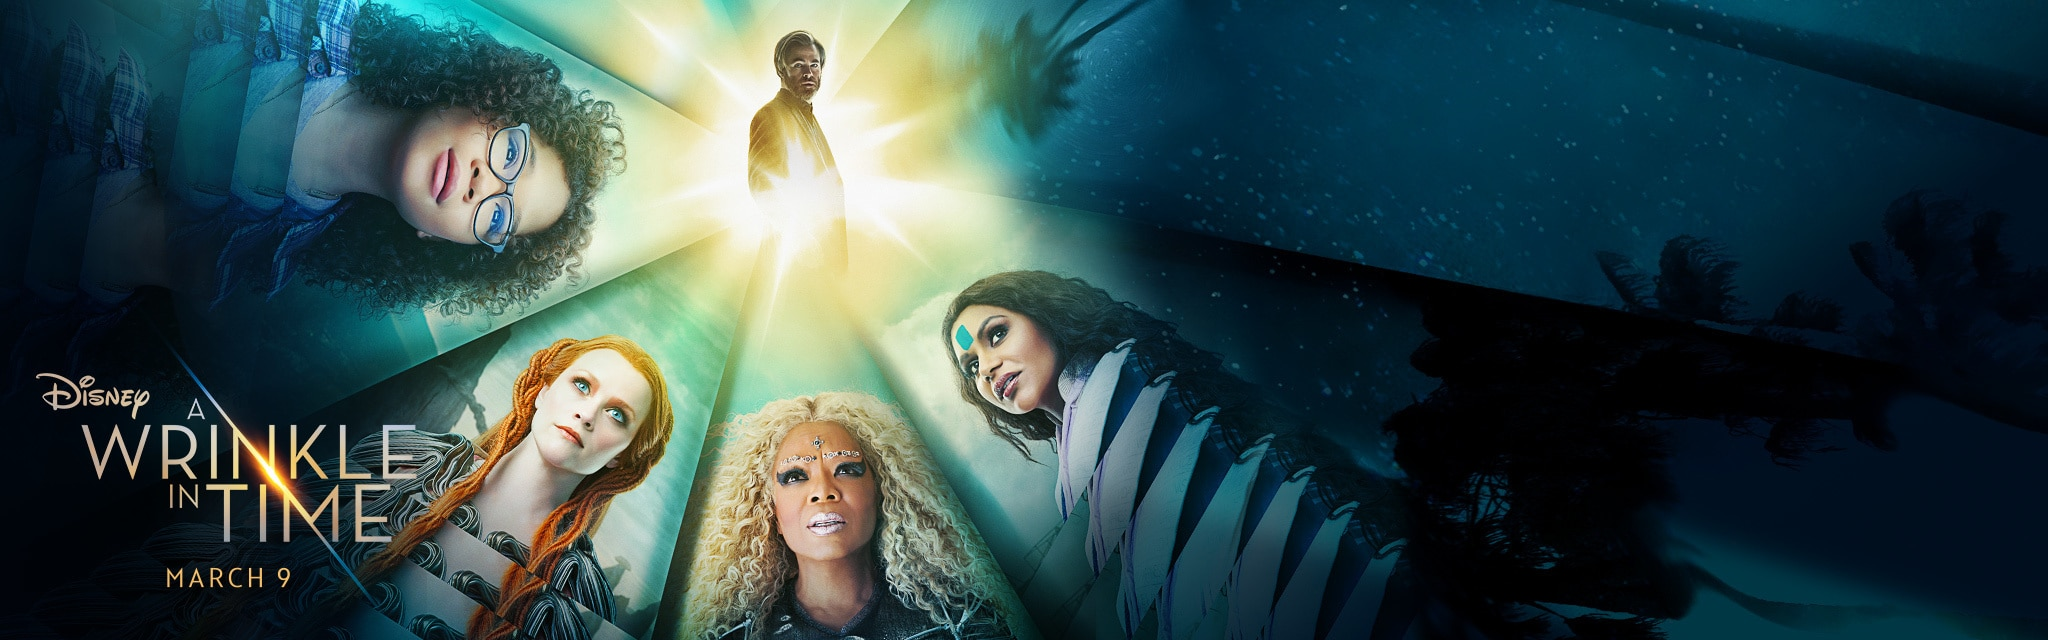 A Wrinkle In Time - Tickets - Hero